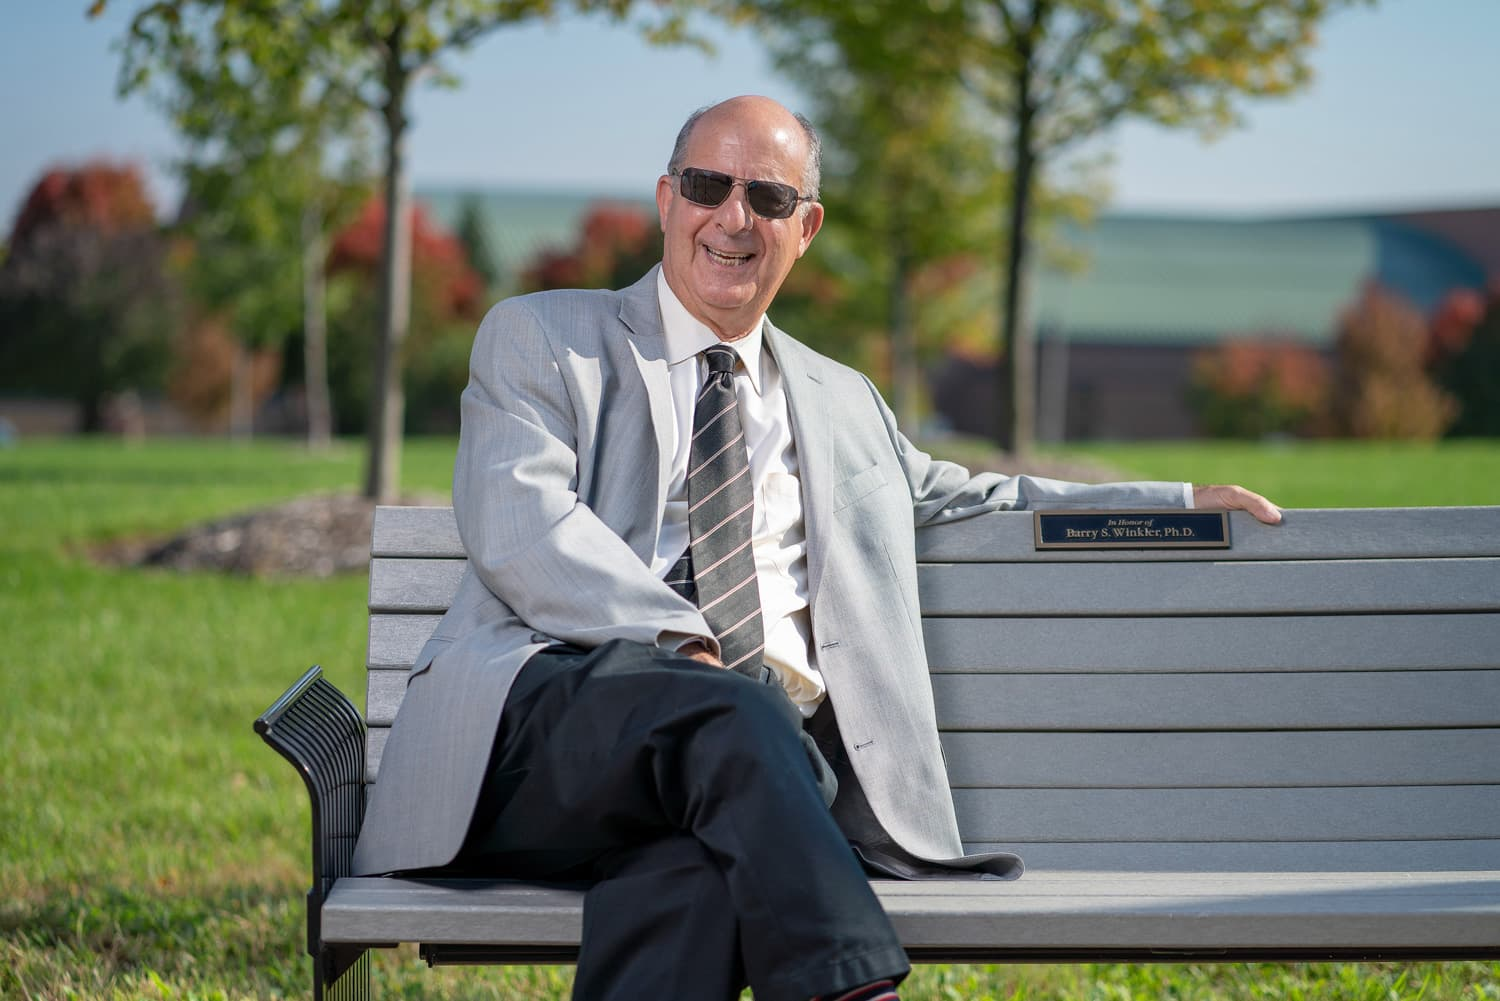 Doctor in sunglasses sitting on bench on campus.